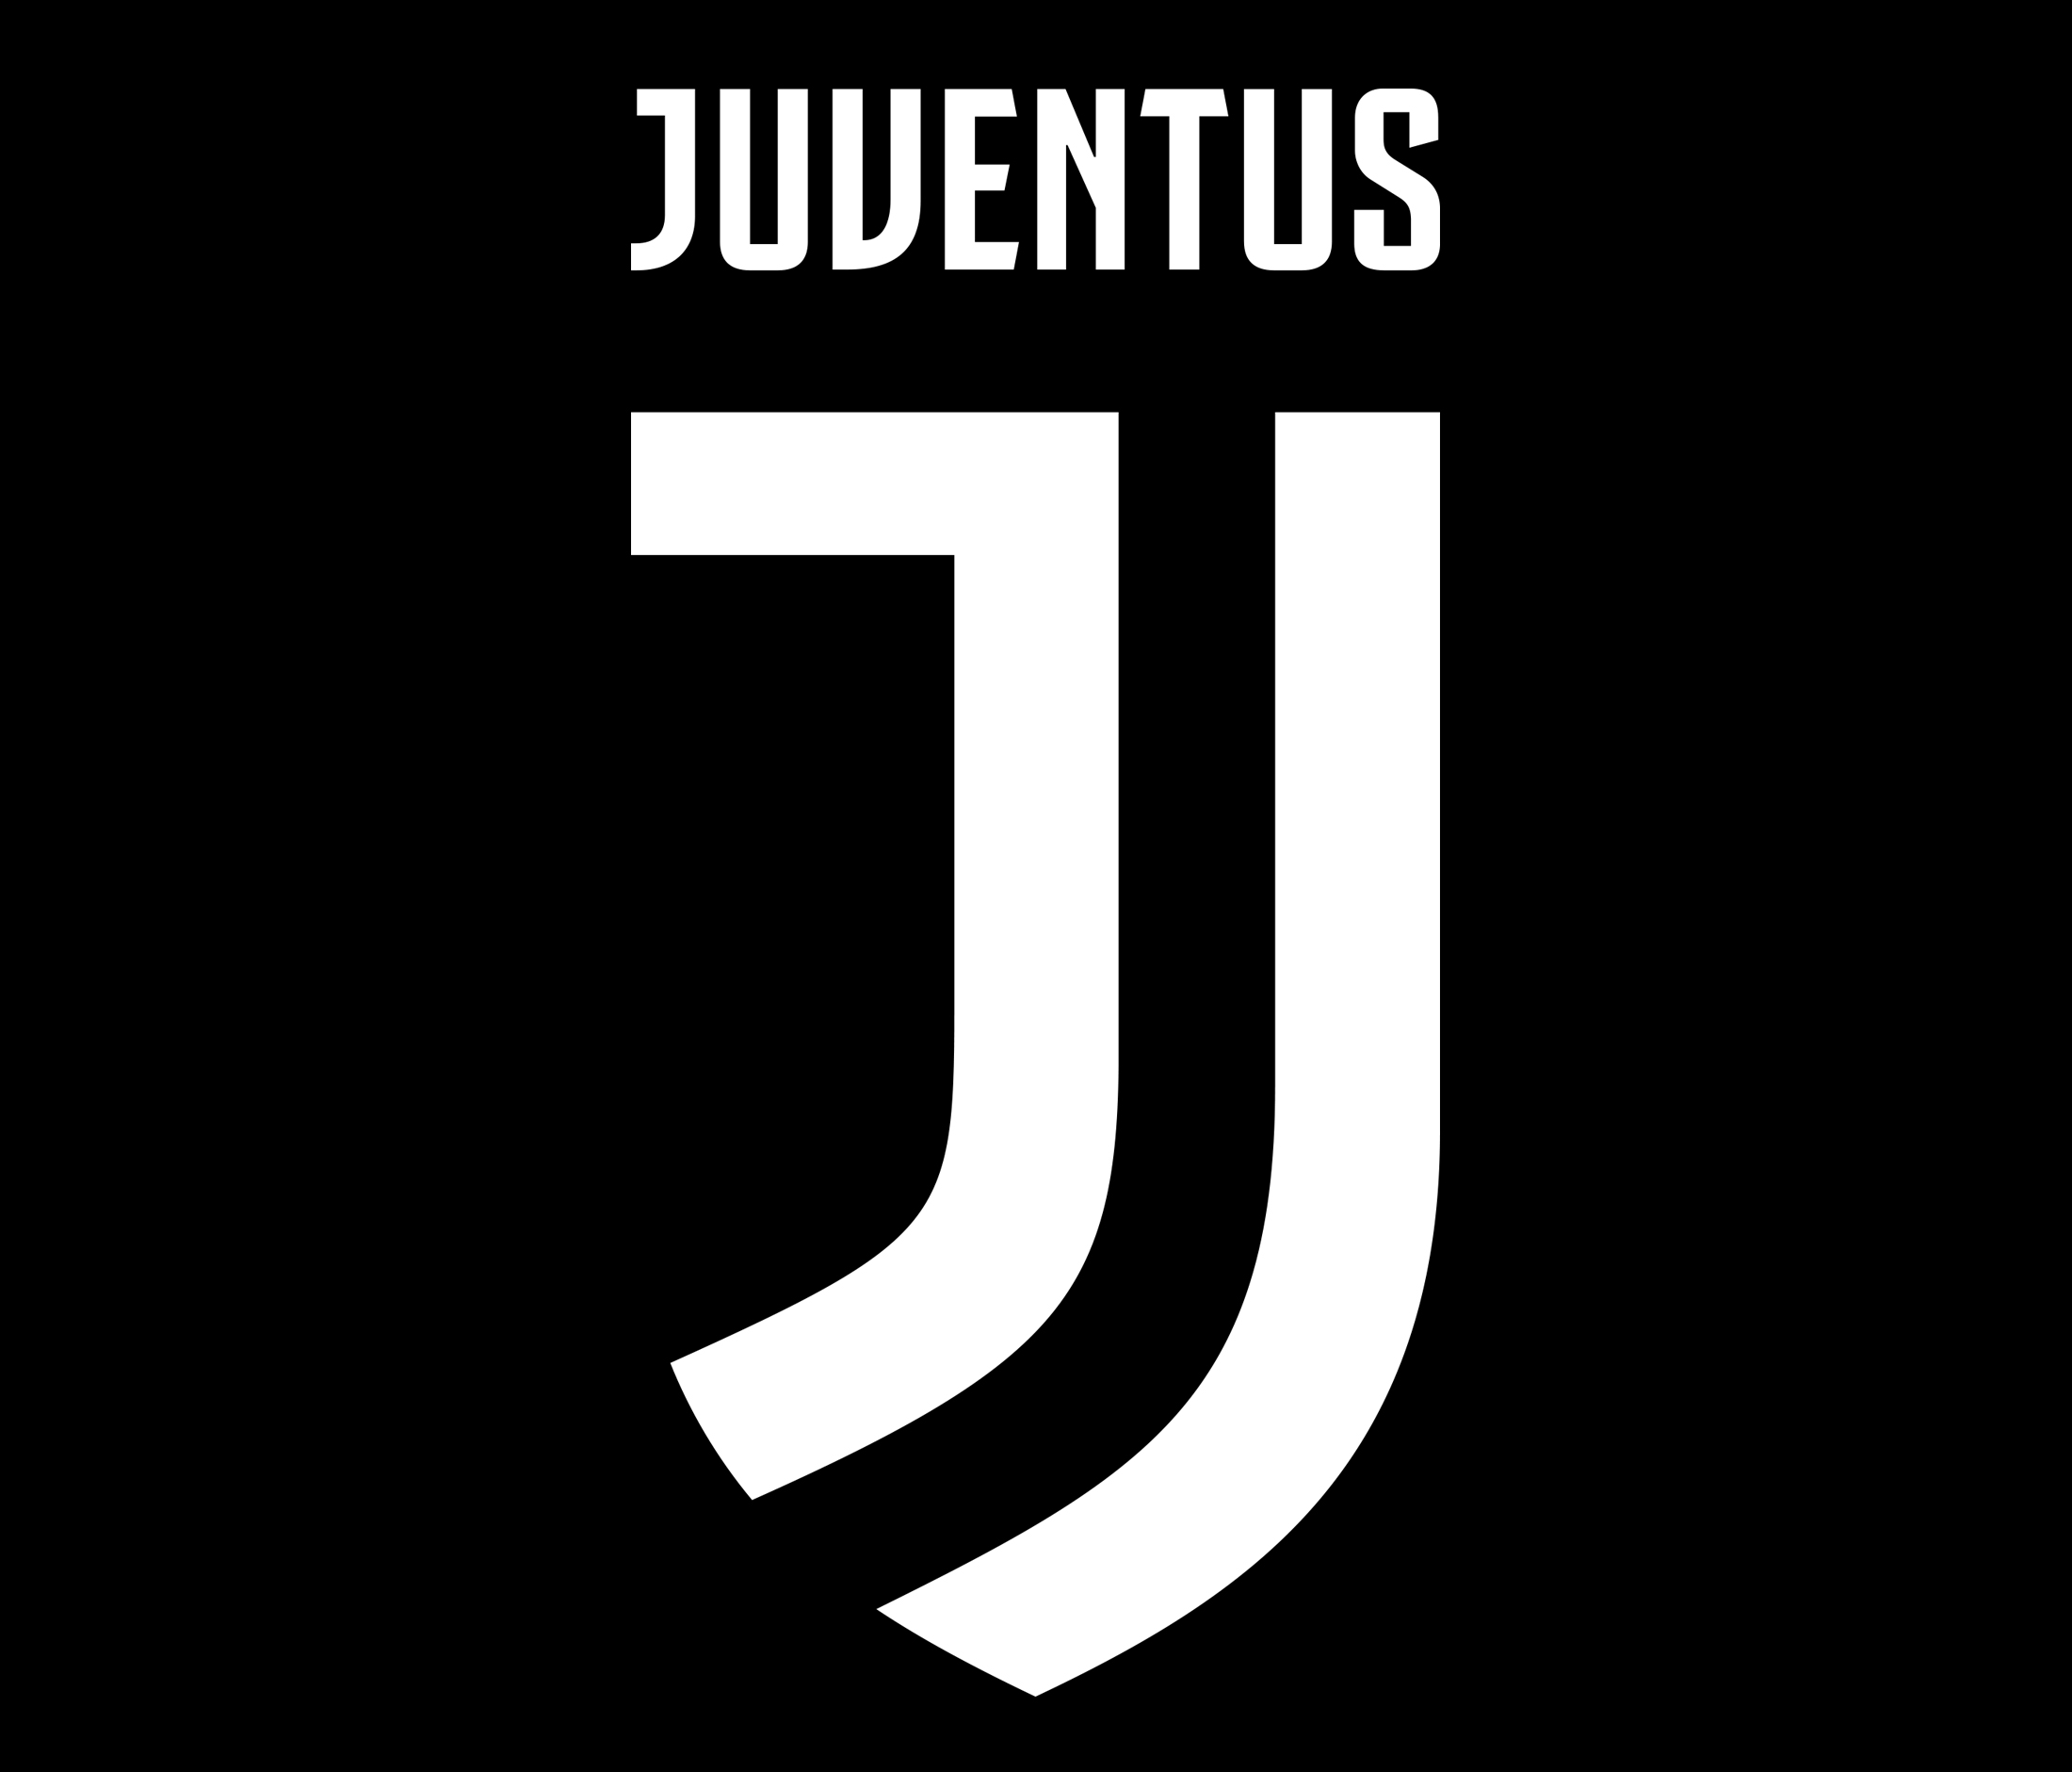 juventus - photo #13